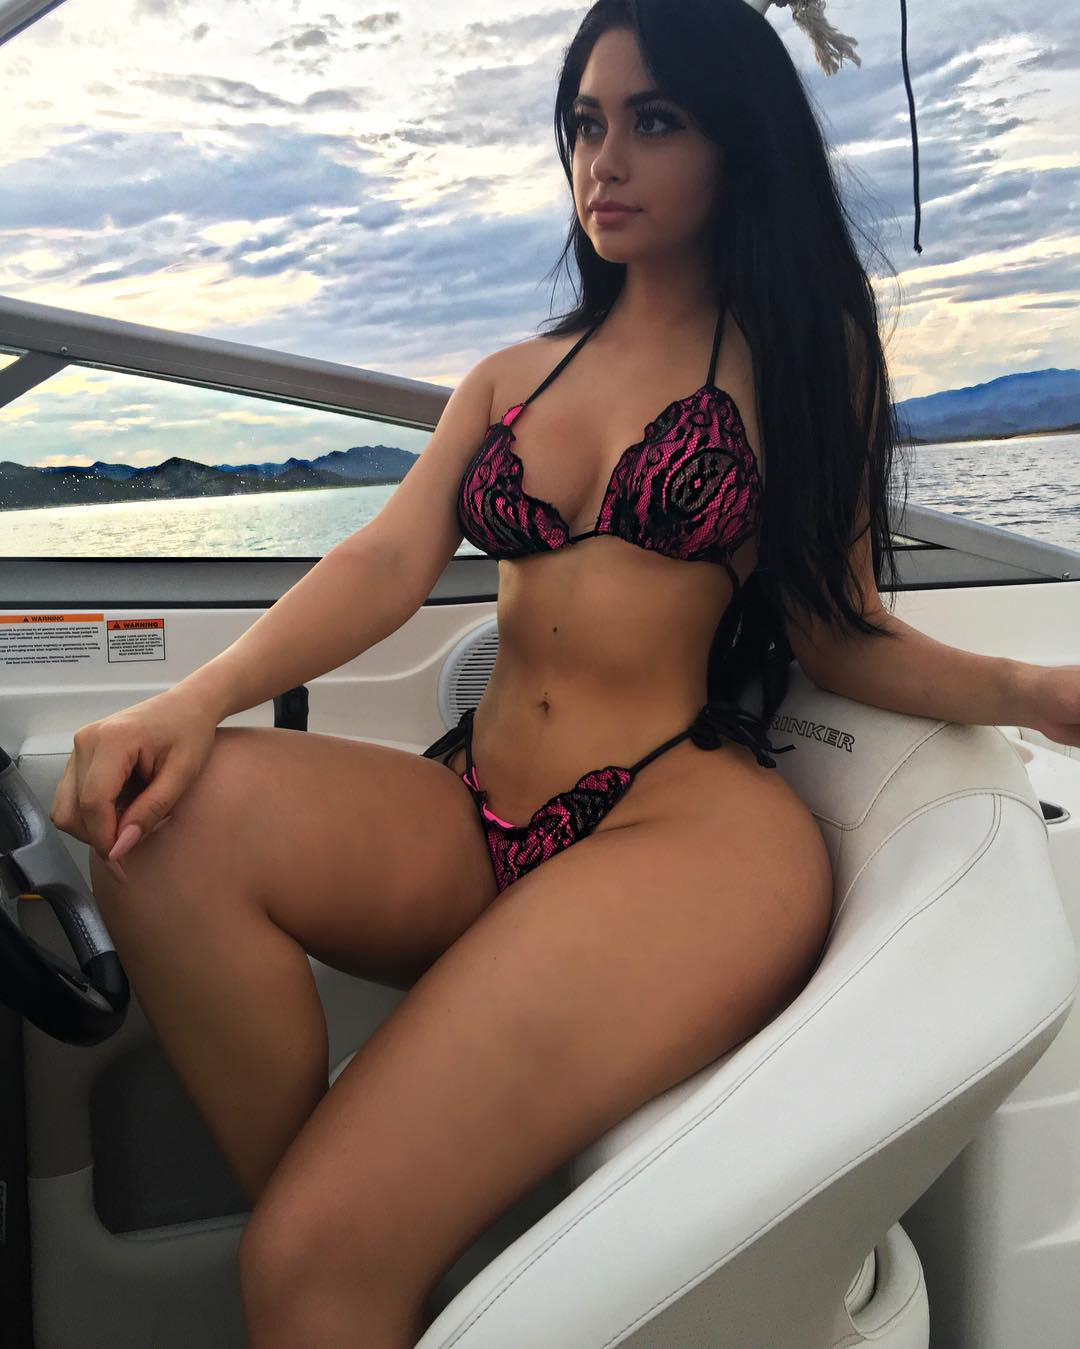 Watch Jailyne ojeda ochoa naked video